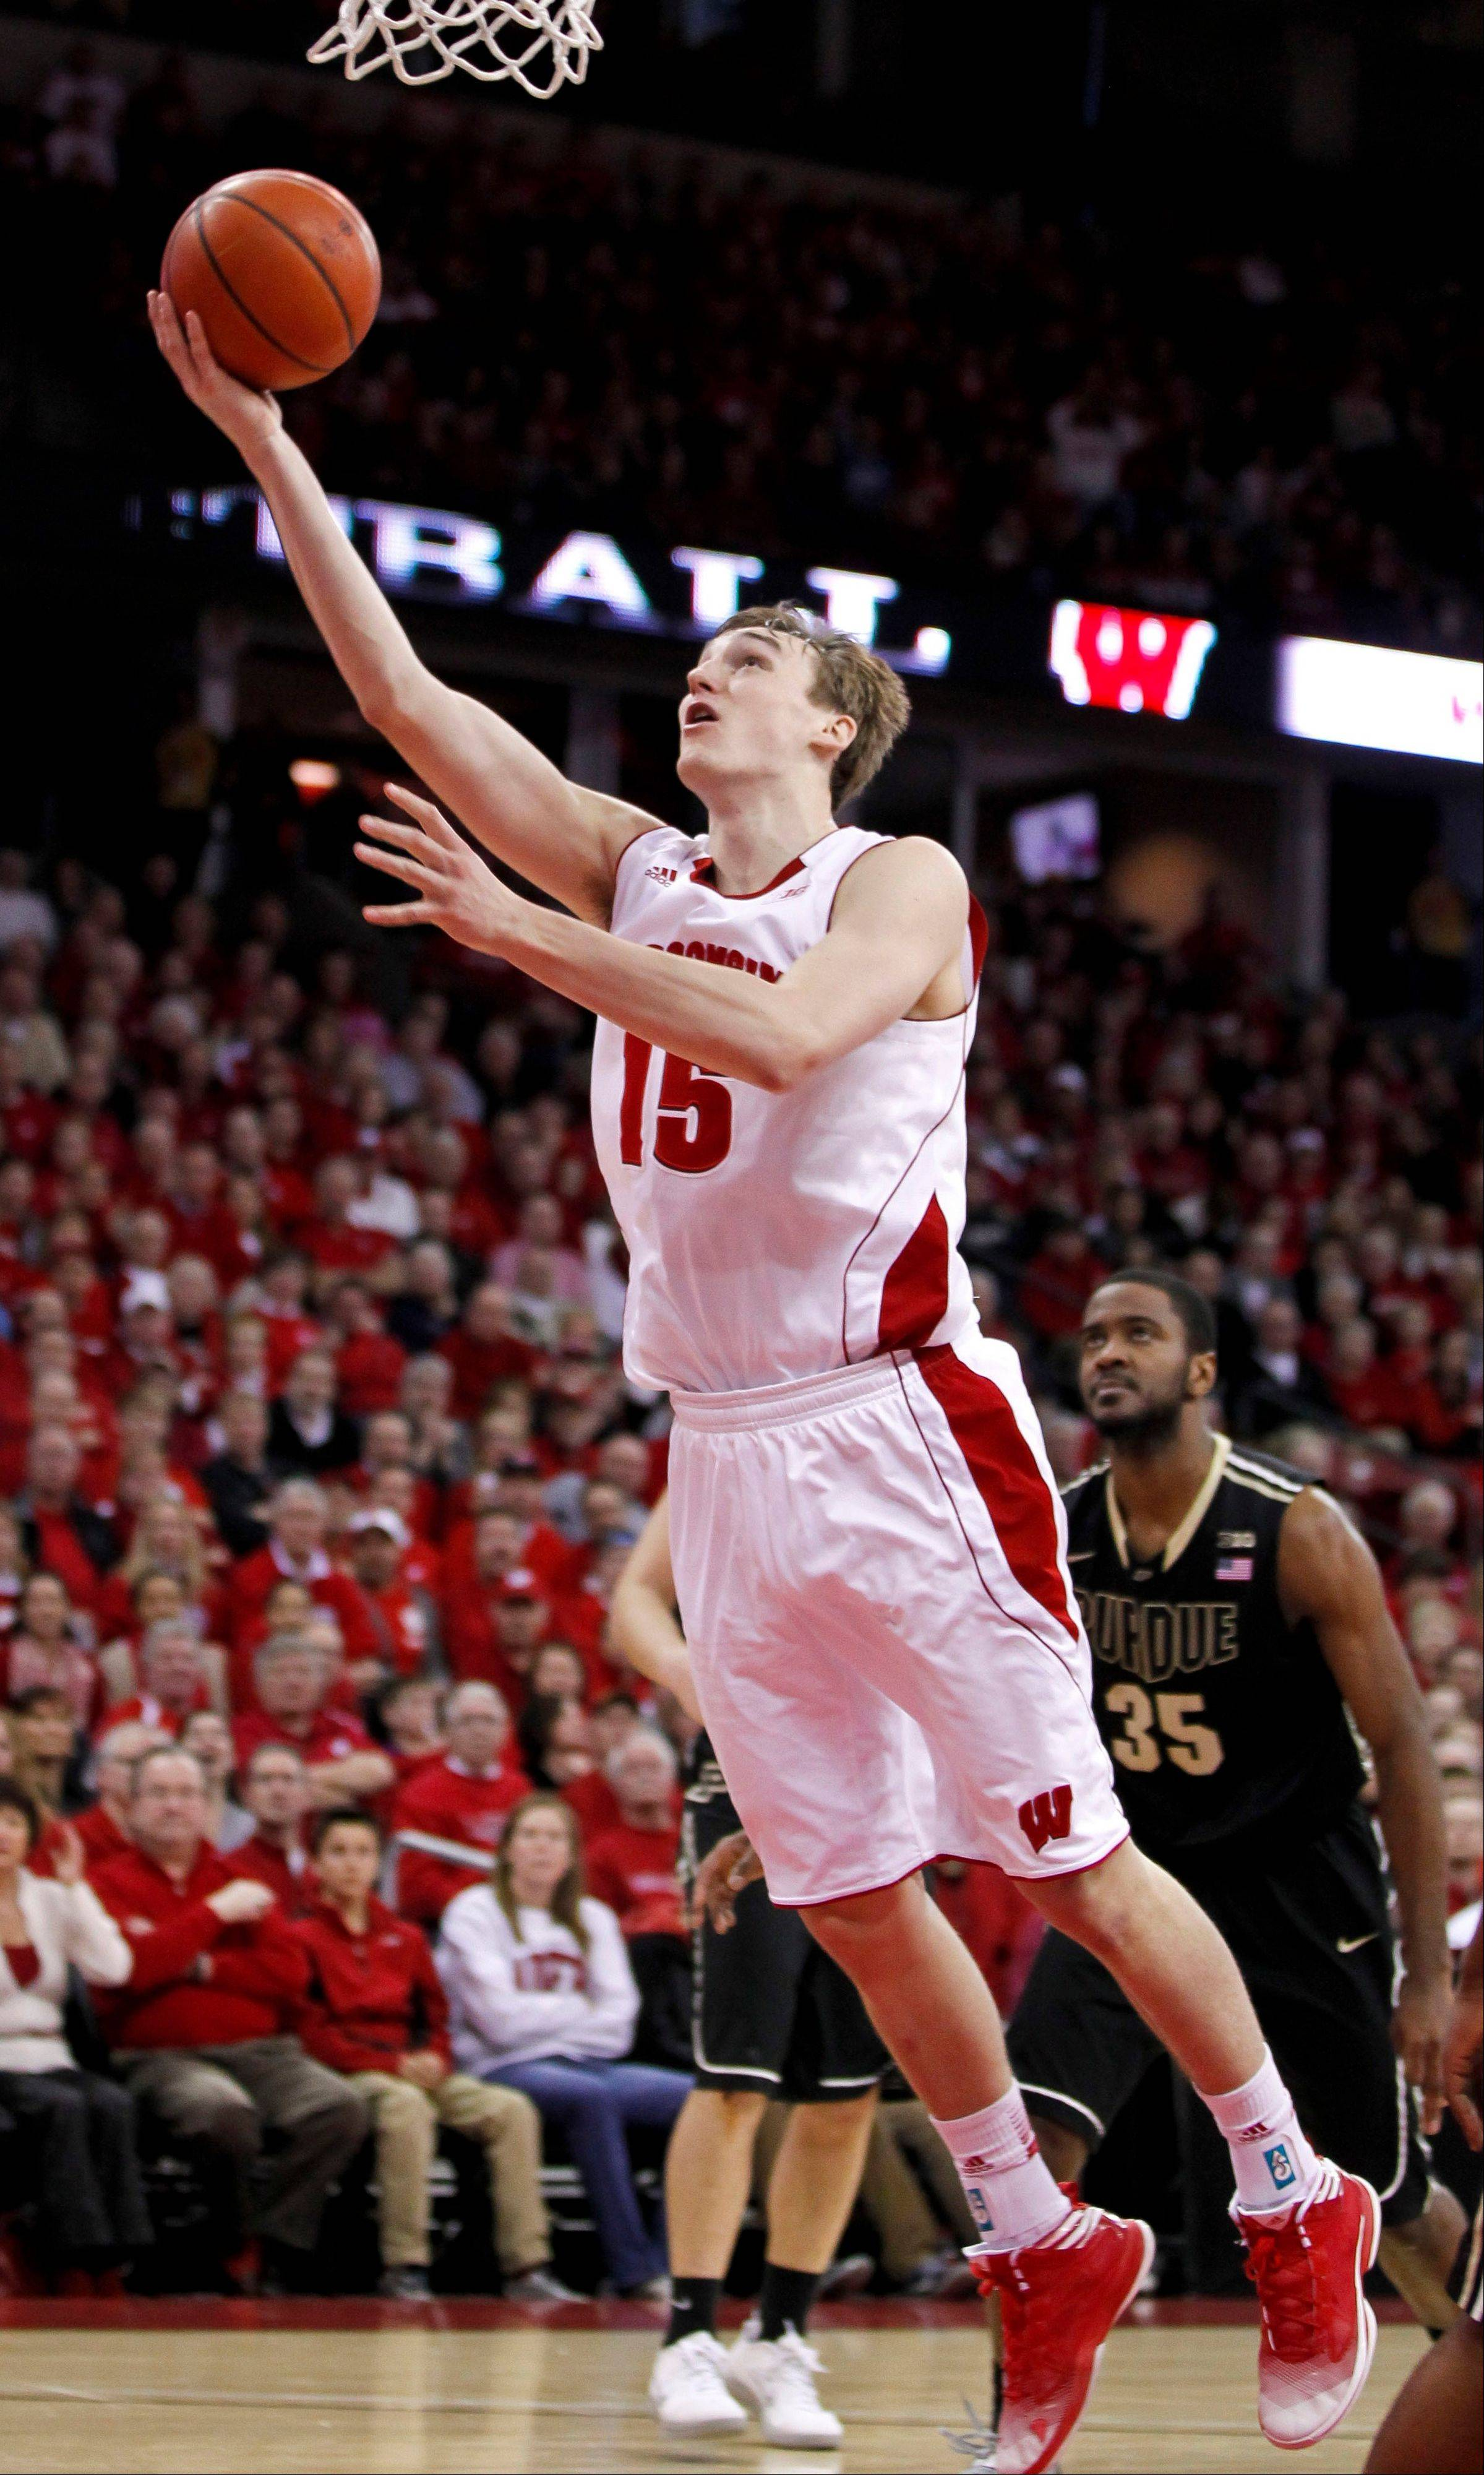 Wisconsin�s Sam Dekker goes to the basket against Purdue during a game in Madison, Wis. Dekker shot 41 percent from 3-point range in Big Ten play last year.